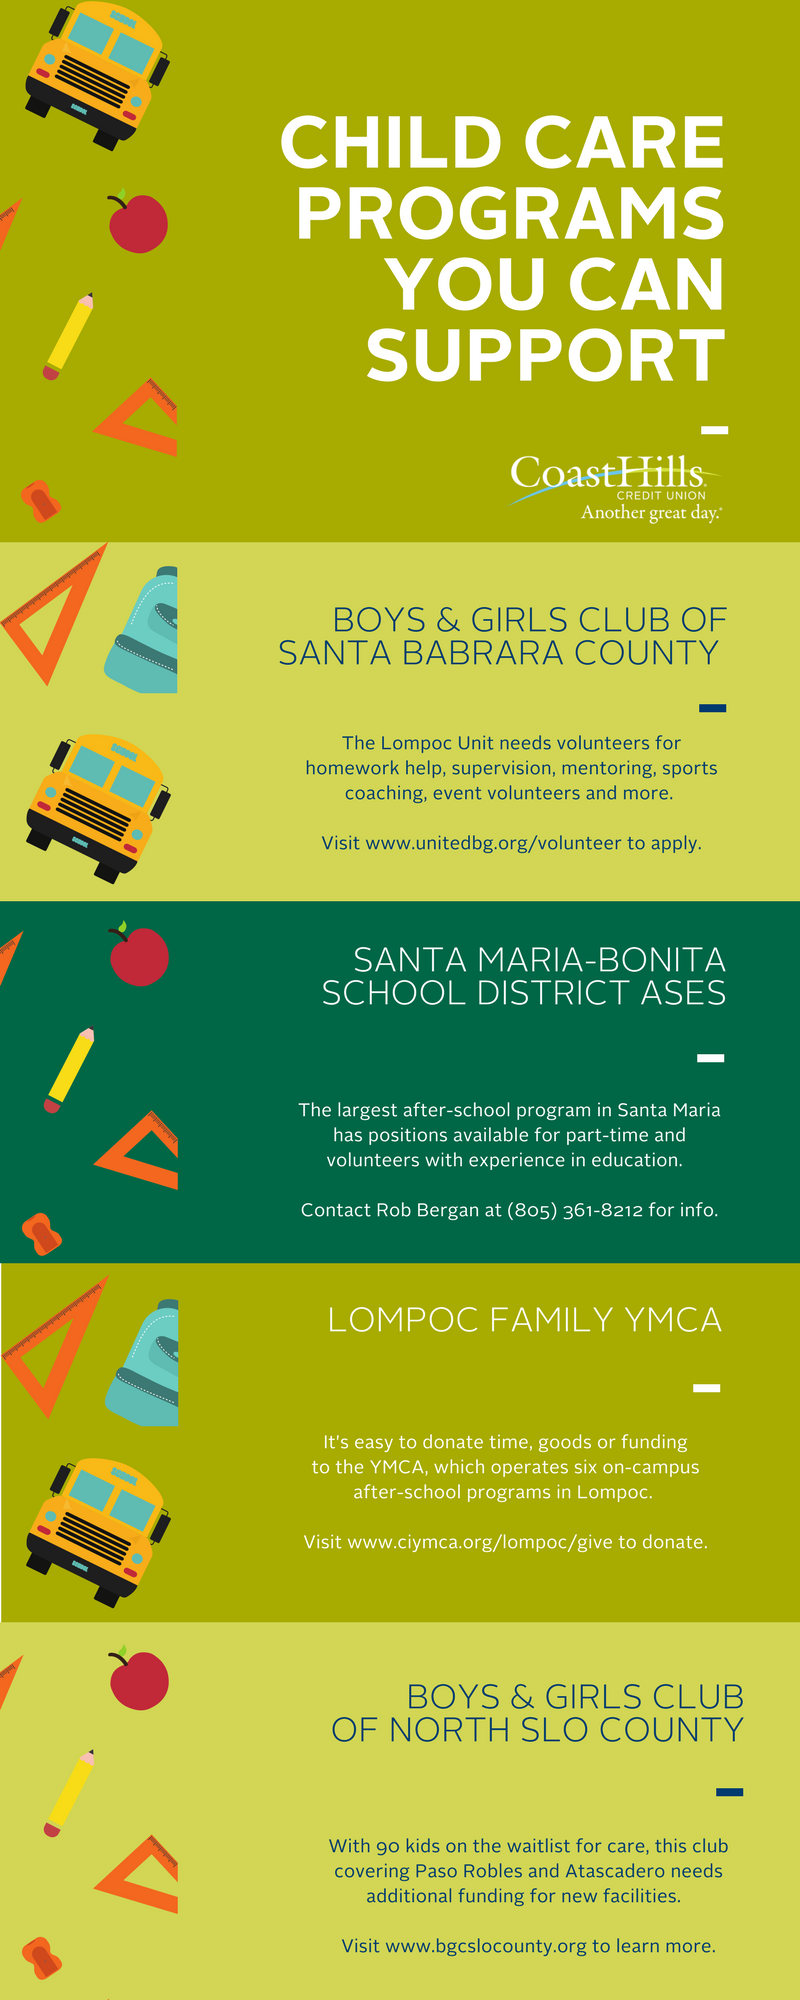 Make a difference at the Lompoc Boys and Girls Club, Santa Maria Bonita School District ASES, Lompoc Family YMCA and the Boys and Girls Clubs of North San Luis Obispo County.